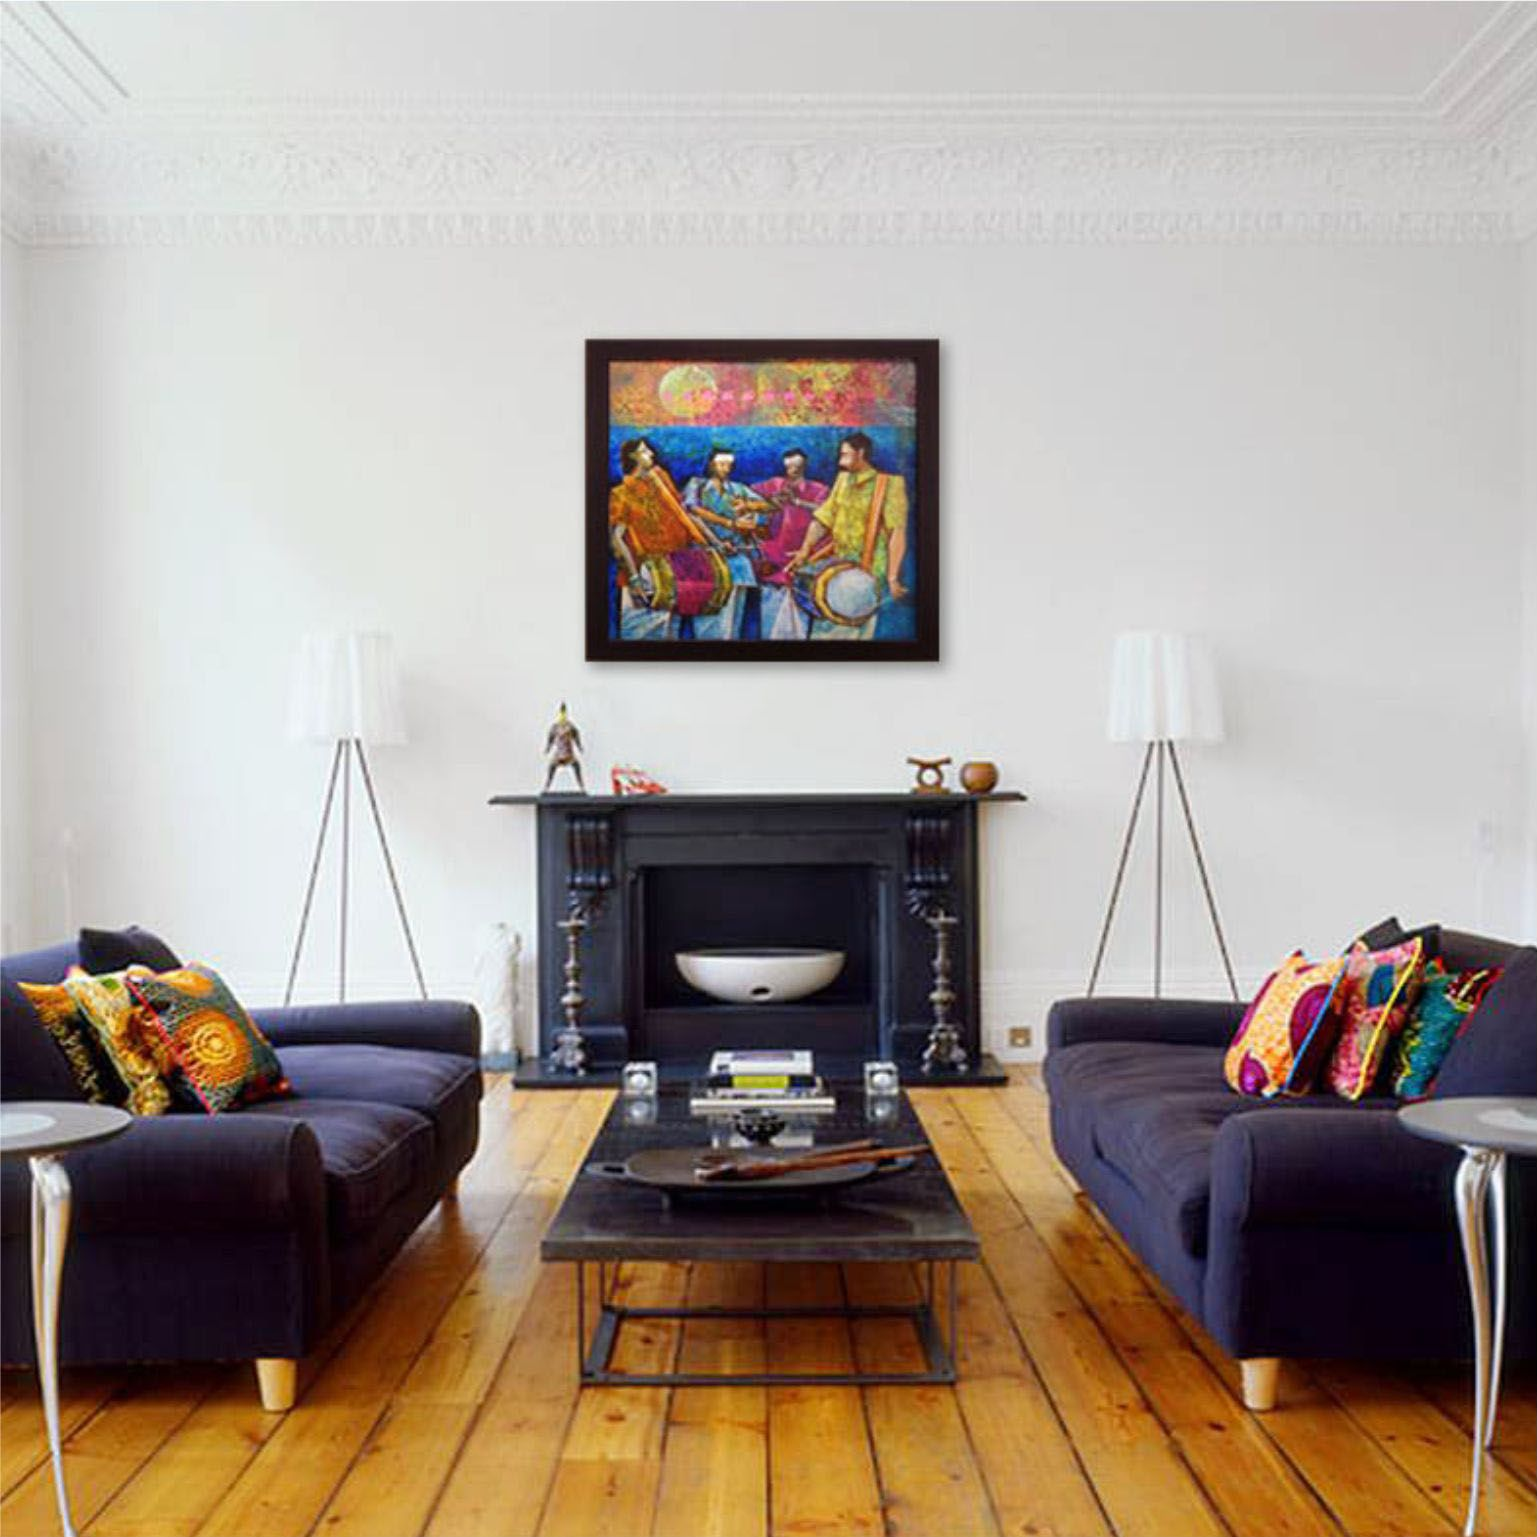 A white walled living room is a peaceful sight to the eye. Add a dash of color to the wall with a lovely abstract or contemporary painting! http://bit.ly/1Sai4BA #Art #Home #Decor #Colorful #IndianArt #ArtGallery #Painting